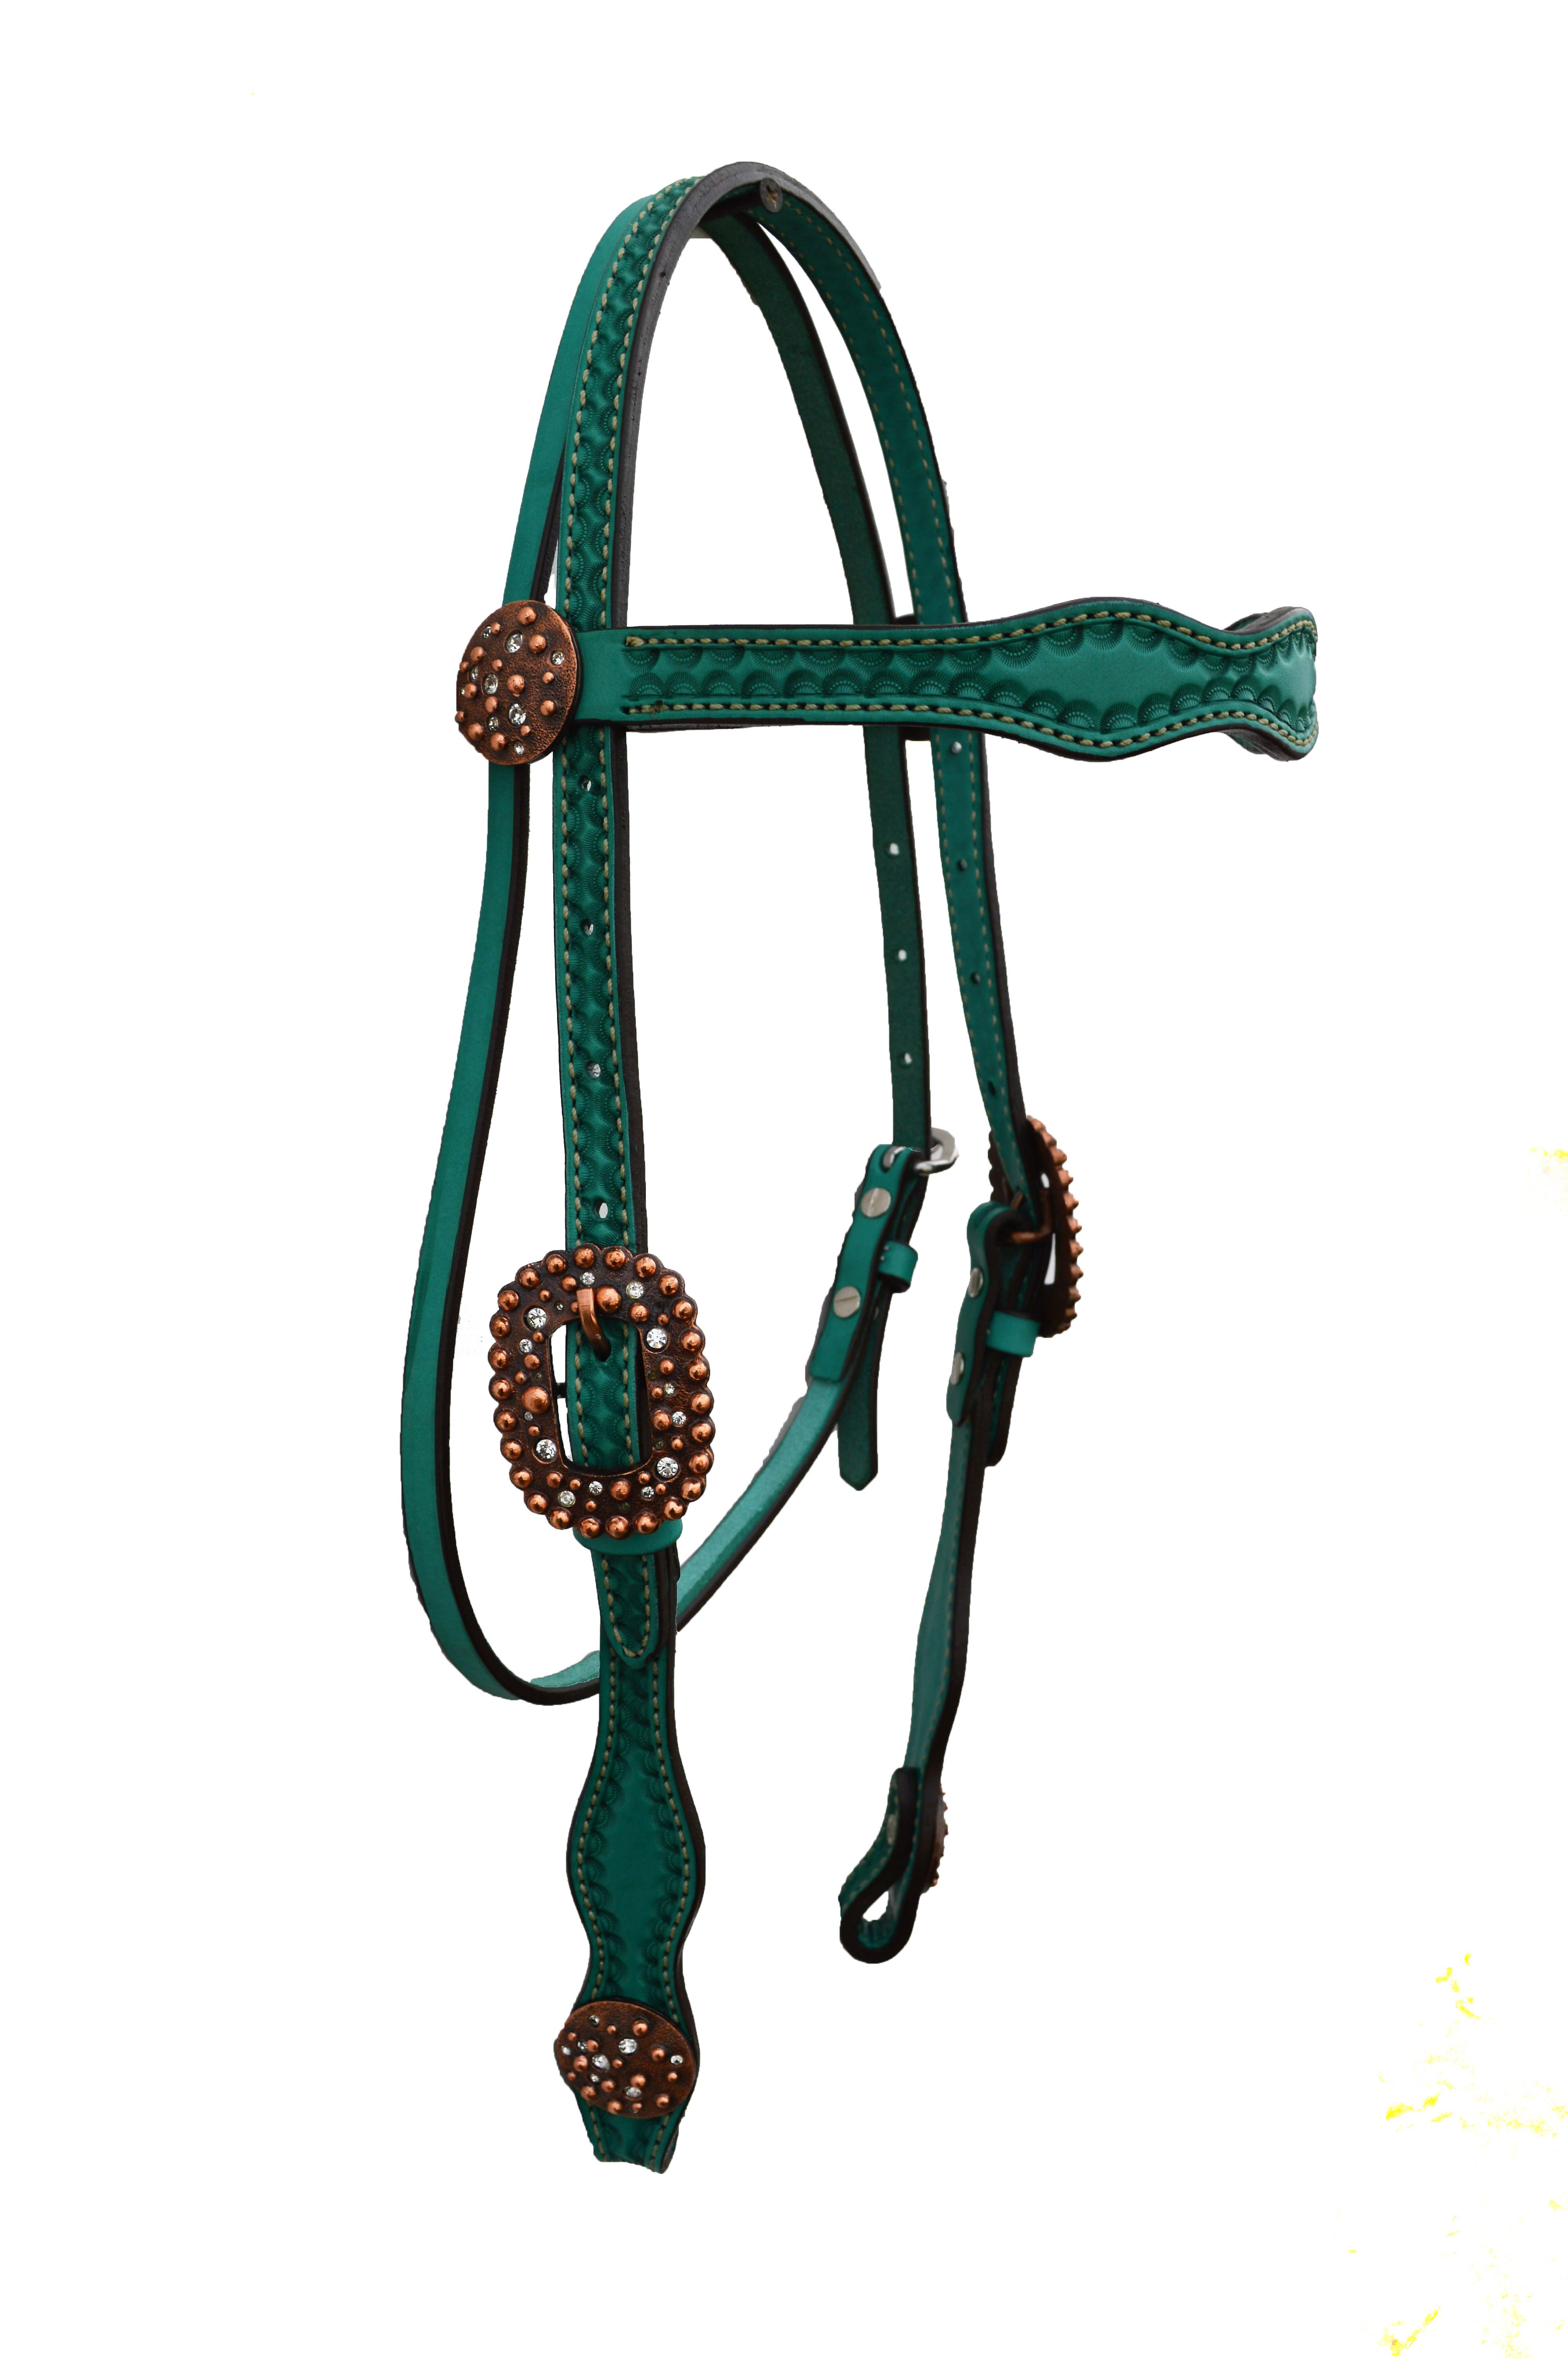 2037-QCI Scalloped, turqoise leather headstall with border shell tooling. 4 CI Conchos and Buckles